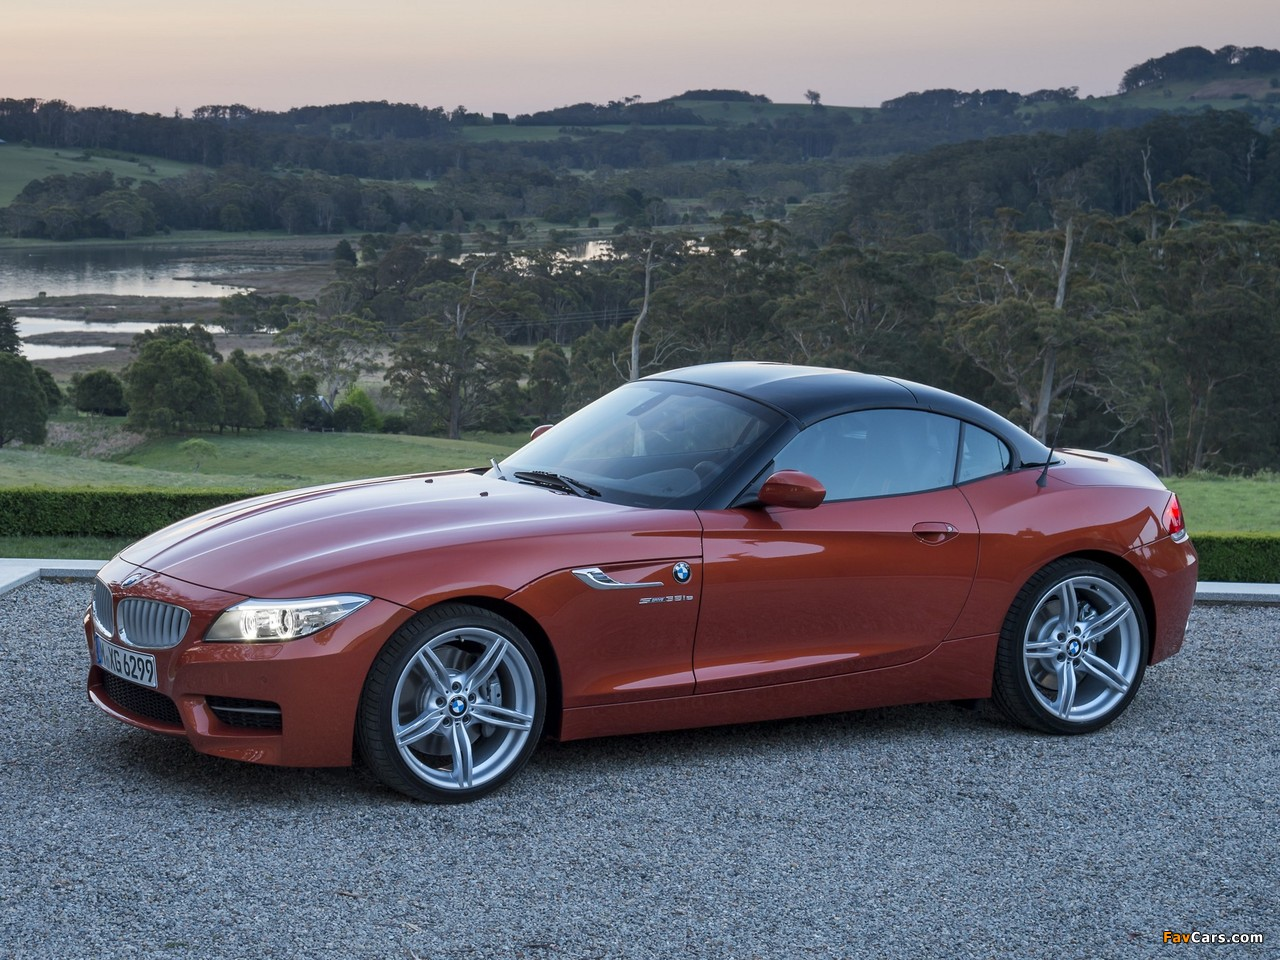 Bmw Z4 Sdrive35is Roadster E89 2012 Photos 1280x960